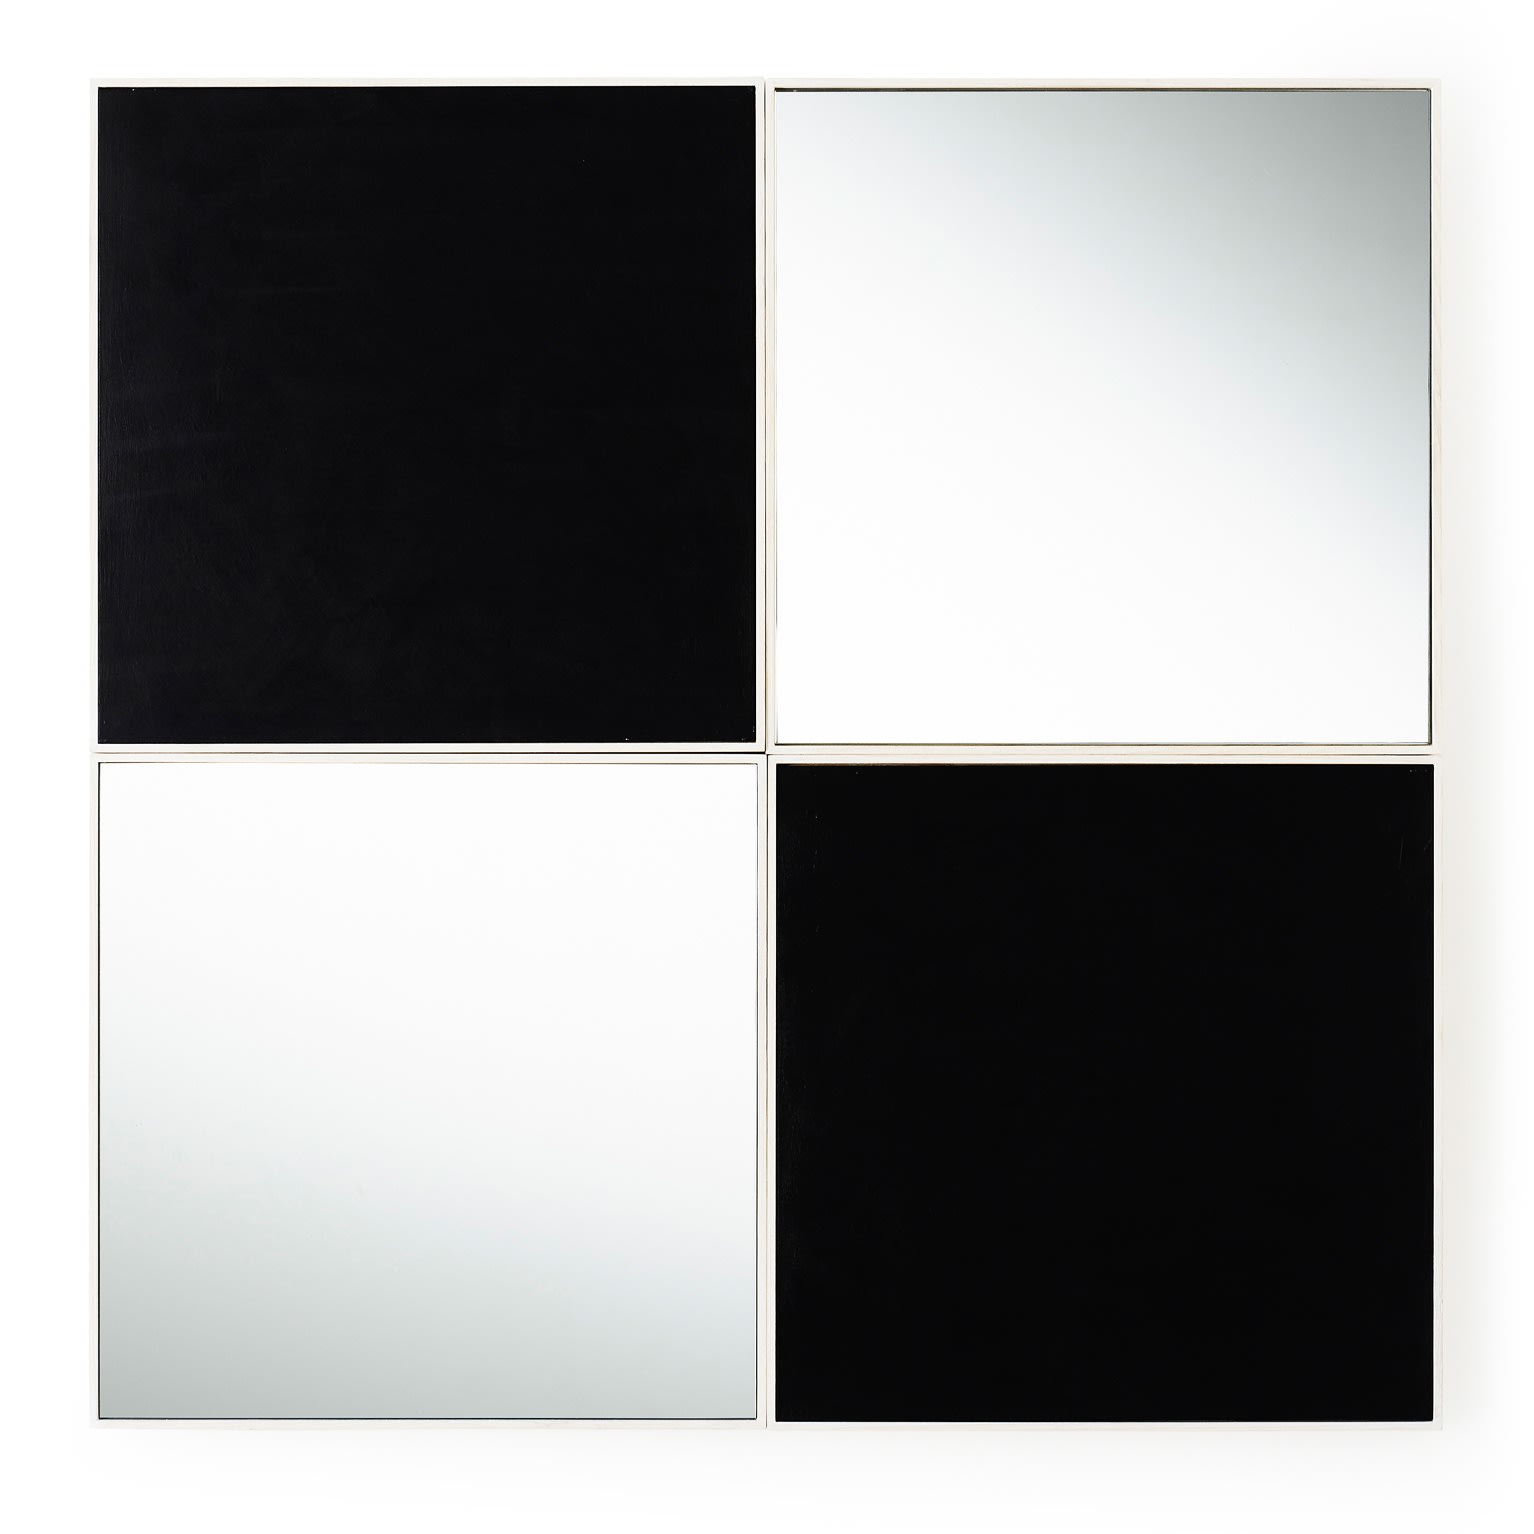 Four Squares (after Malevich)